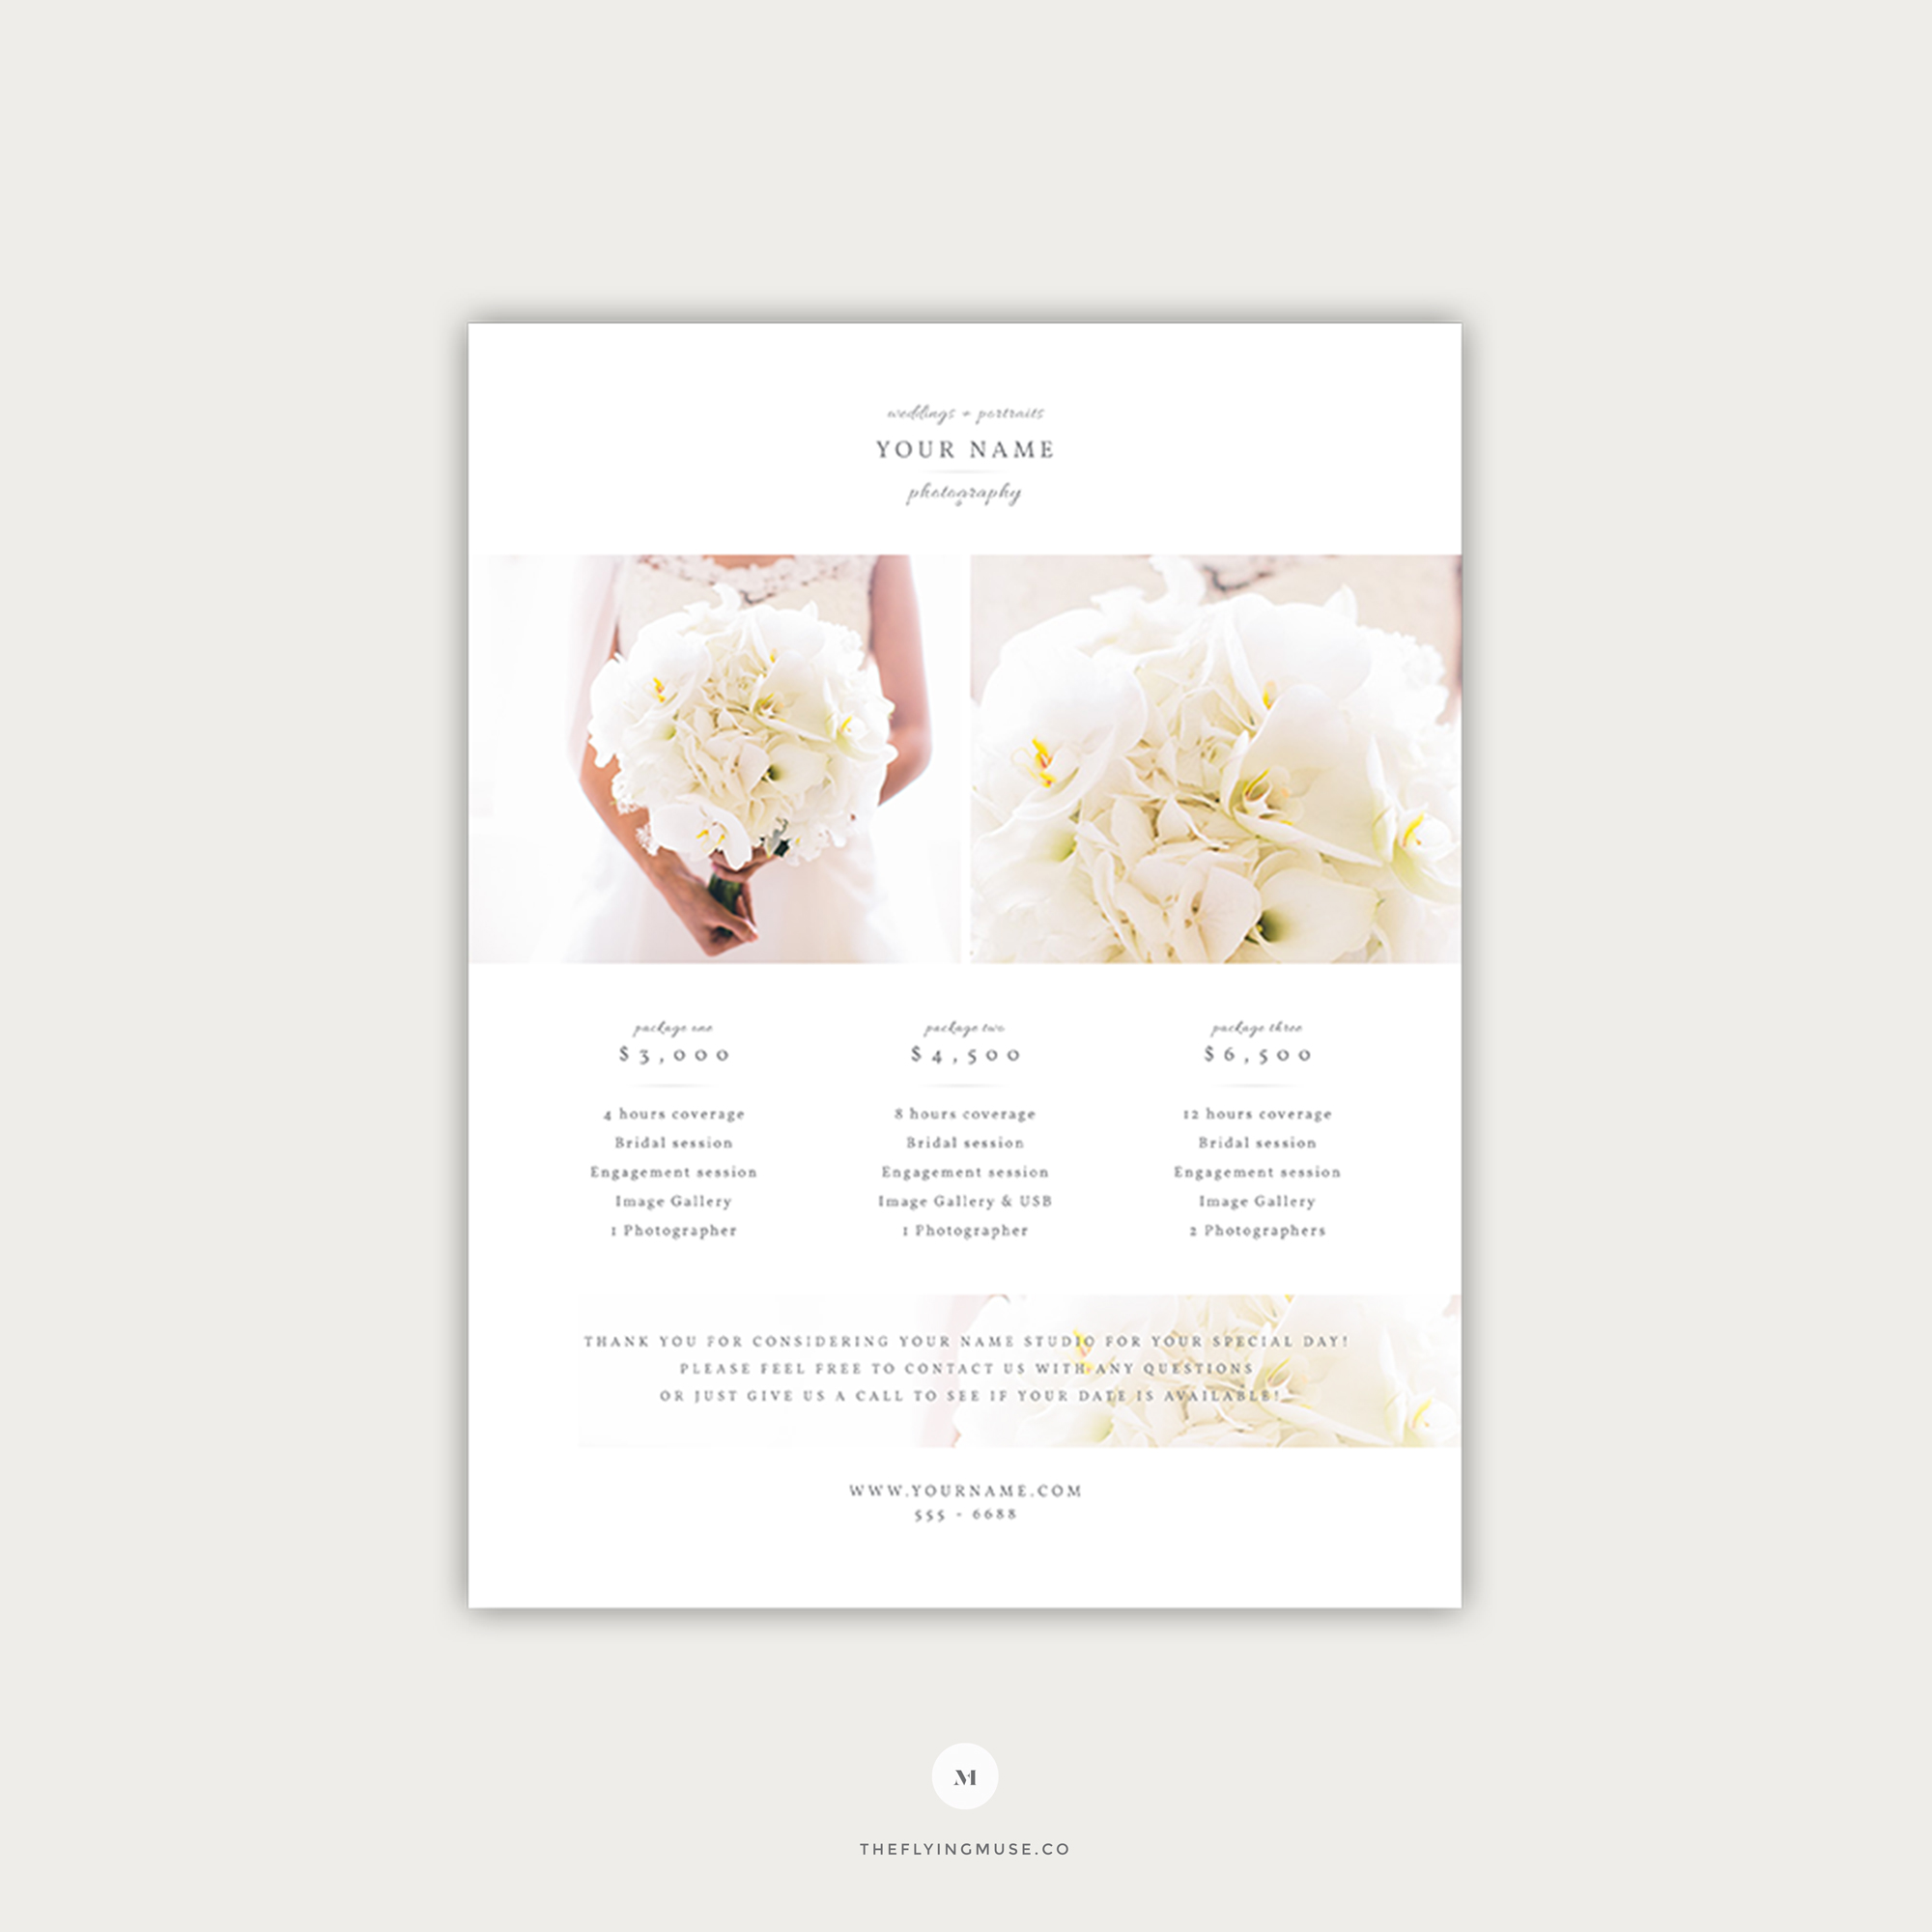 Elegant Wedding Photography Pricing Guide Template